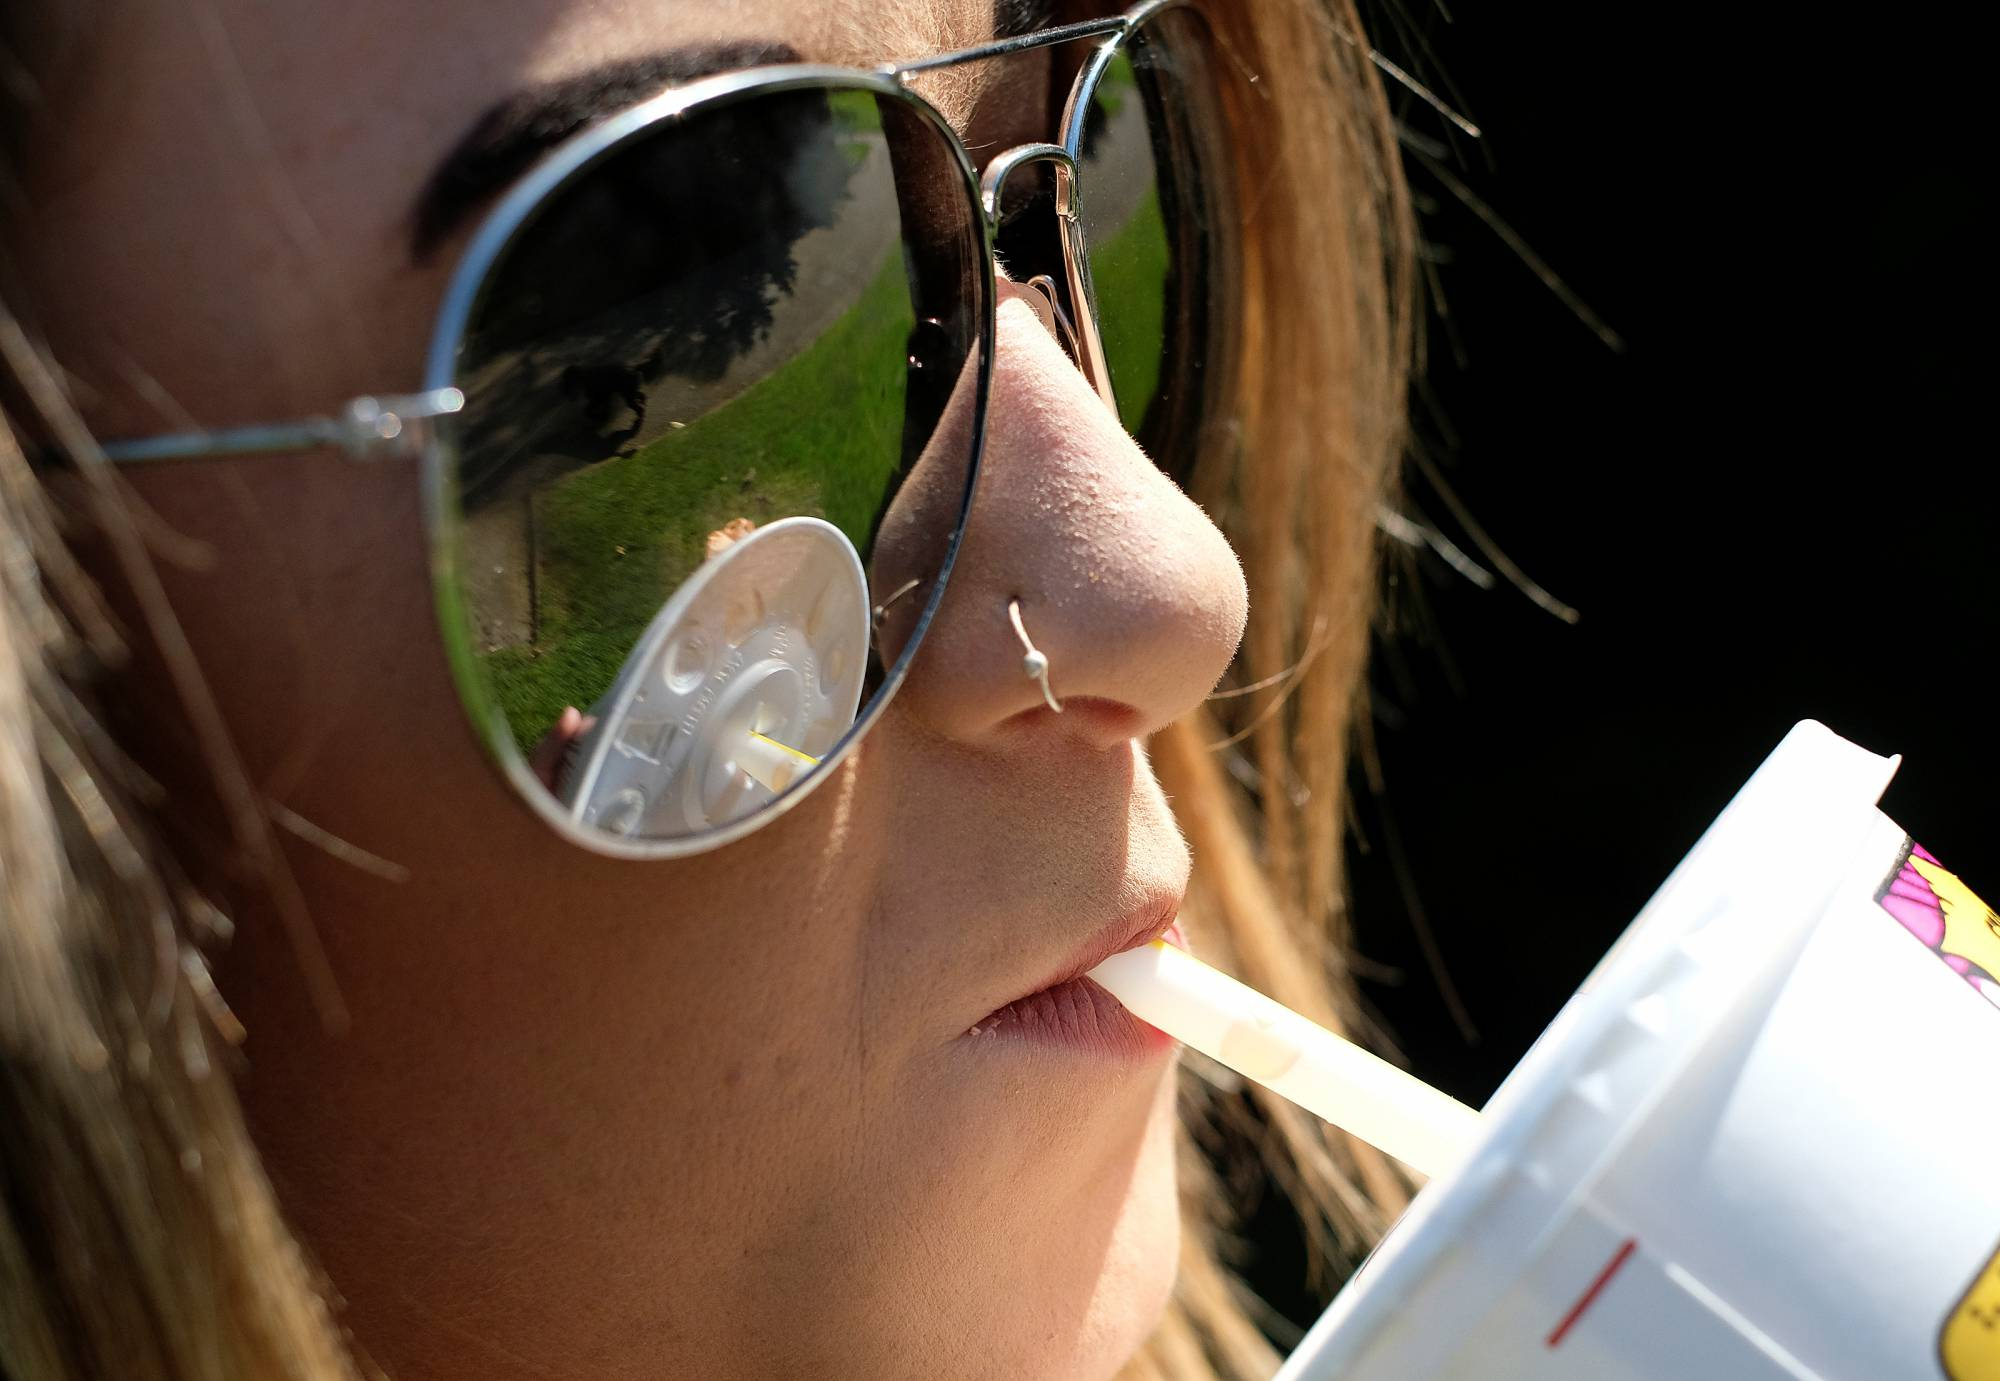 A woman drinks a McDonalds refreshment with a straw in Loughborough